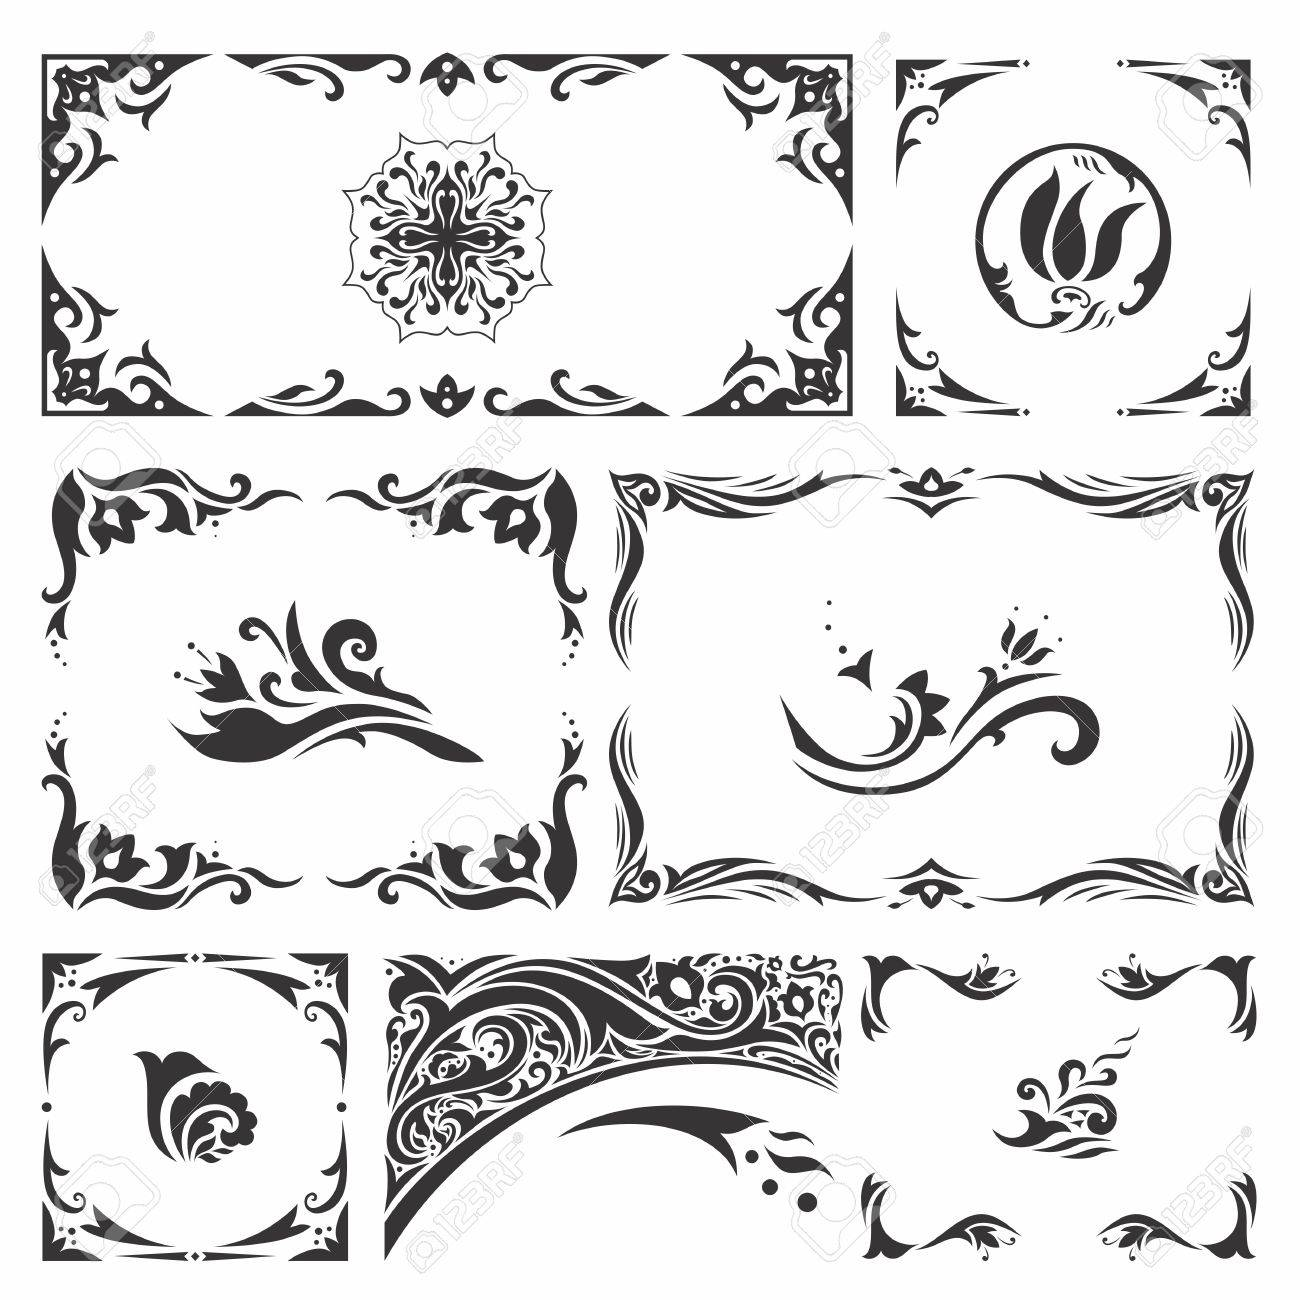 Set Of Elegant Islamic Vignettes And Borders For Design, Cards, Invitations  Stock Vector